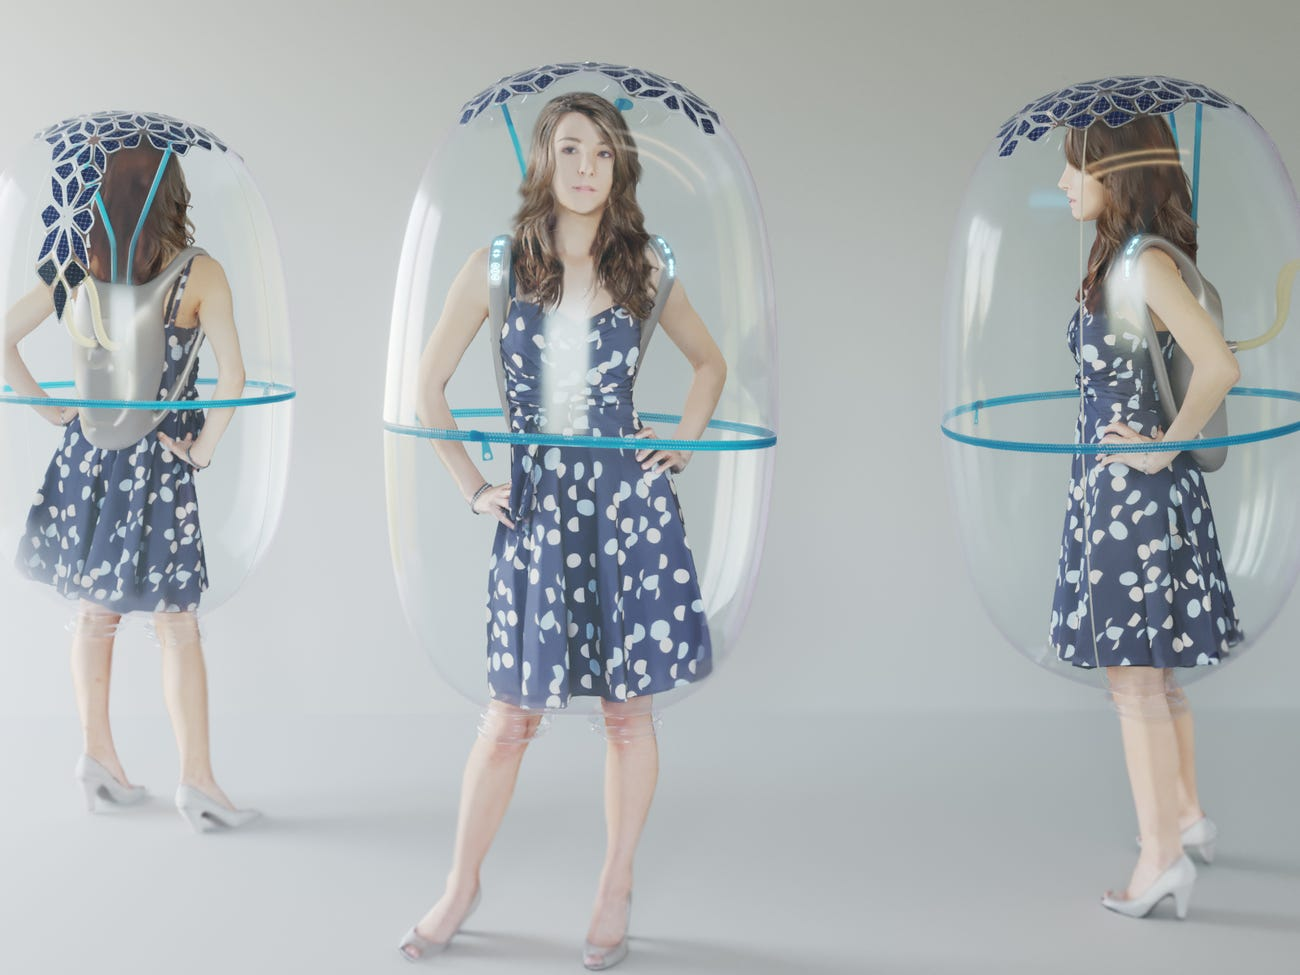 A designer created a solar-powered inflatable 'Bubble Shield' that filters the air around the wearer to protect from the coronavirus